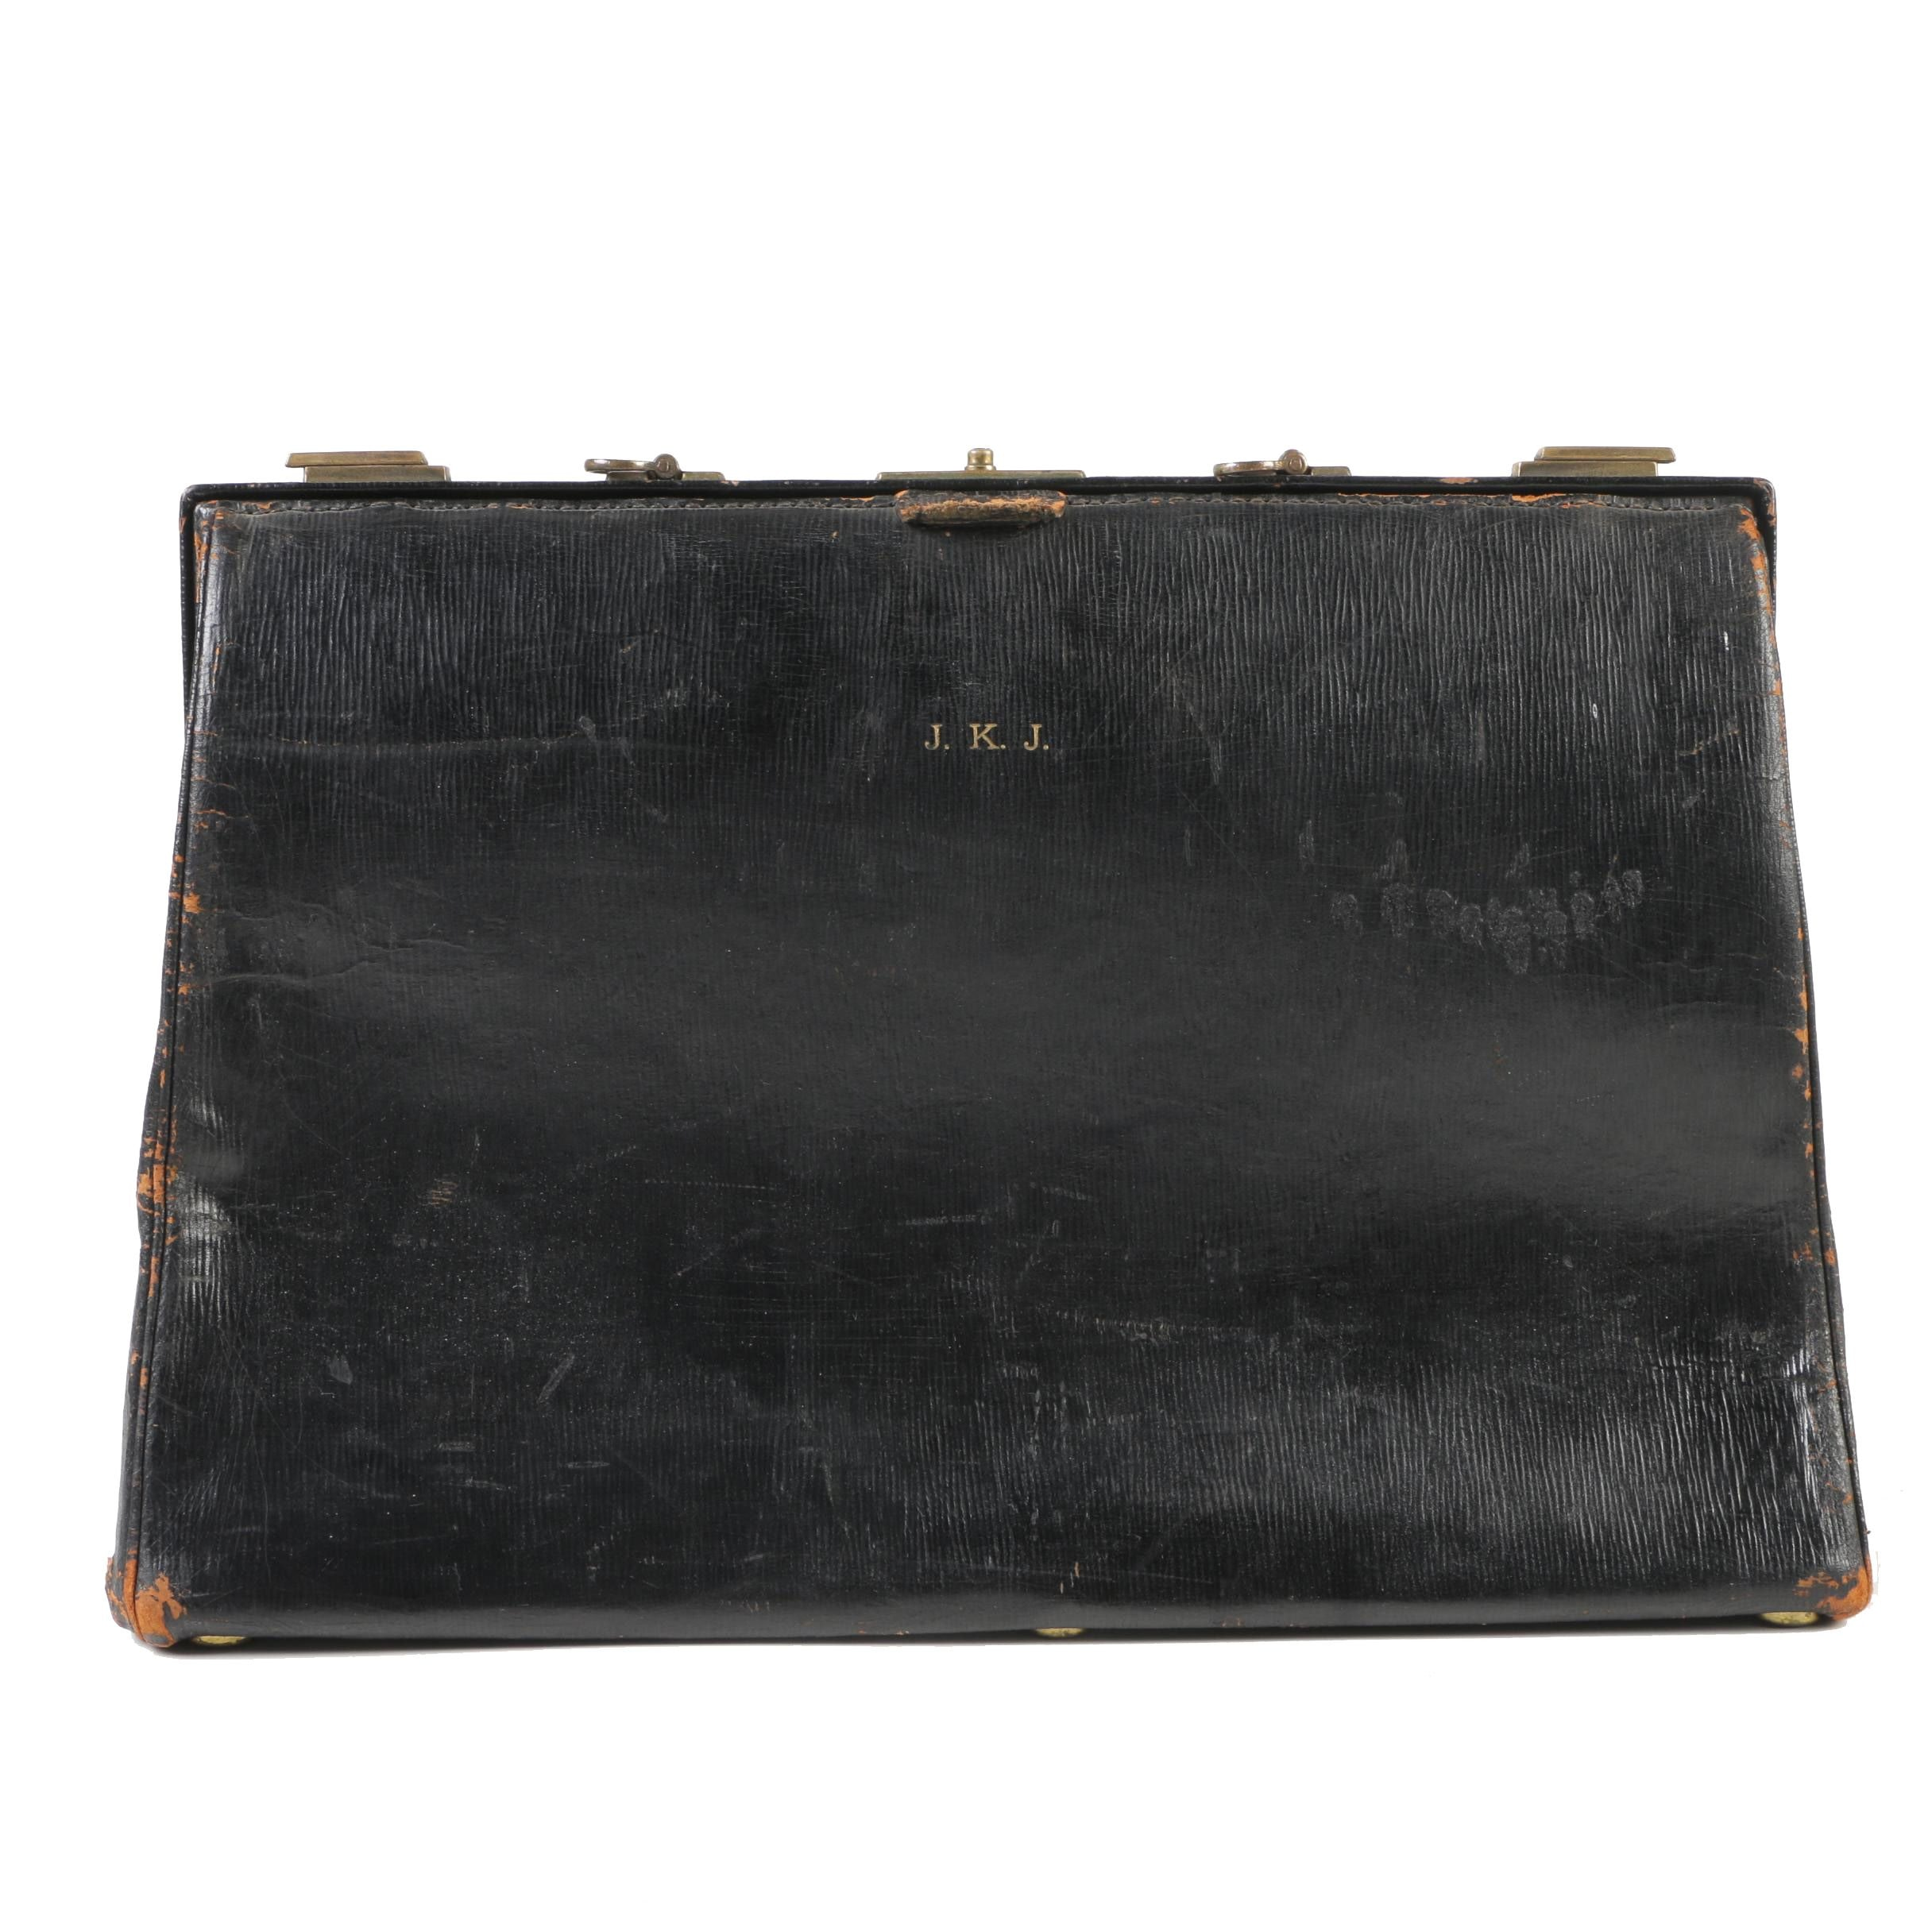 Black Leather Doctor's Bag, Early 20th Century